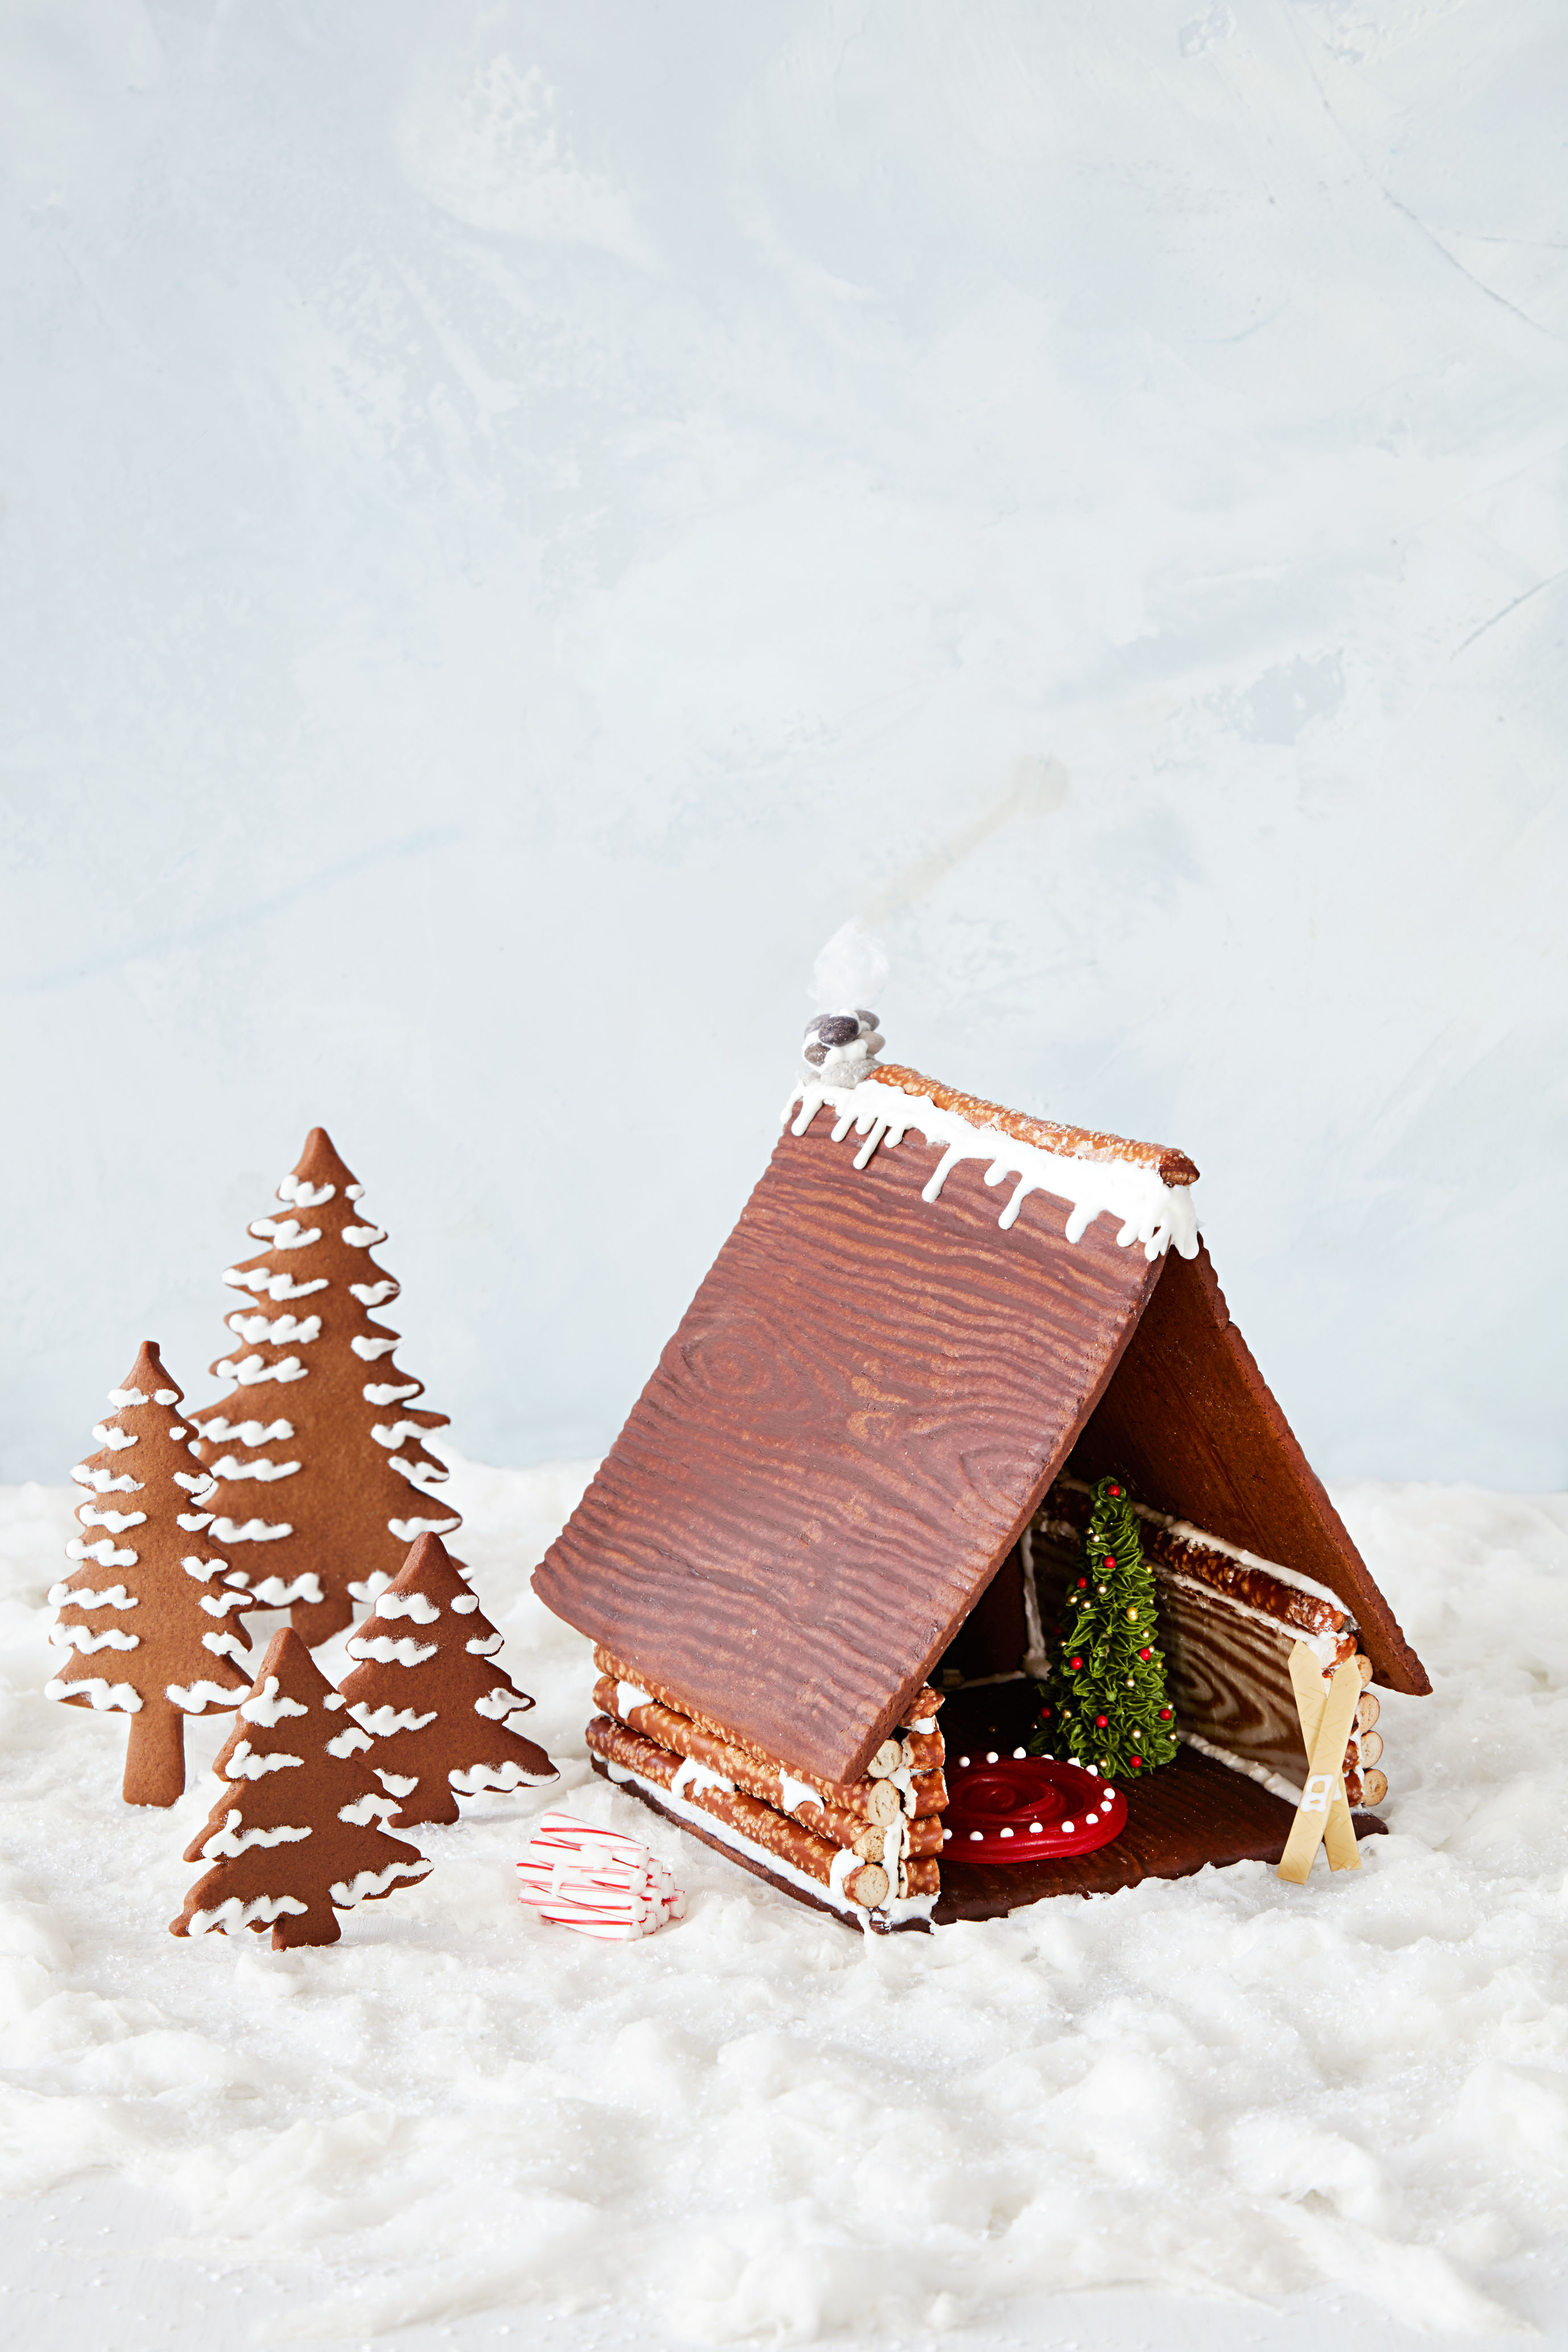 gingerbread house with trees